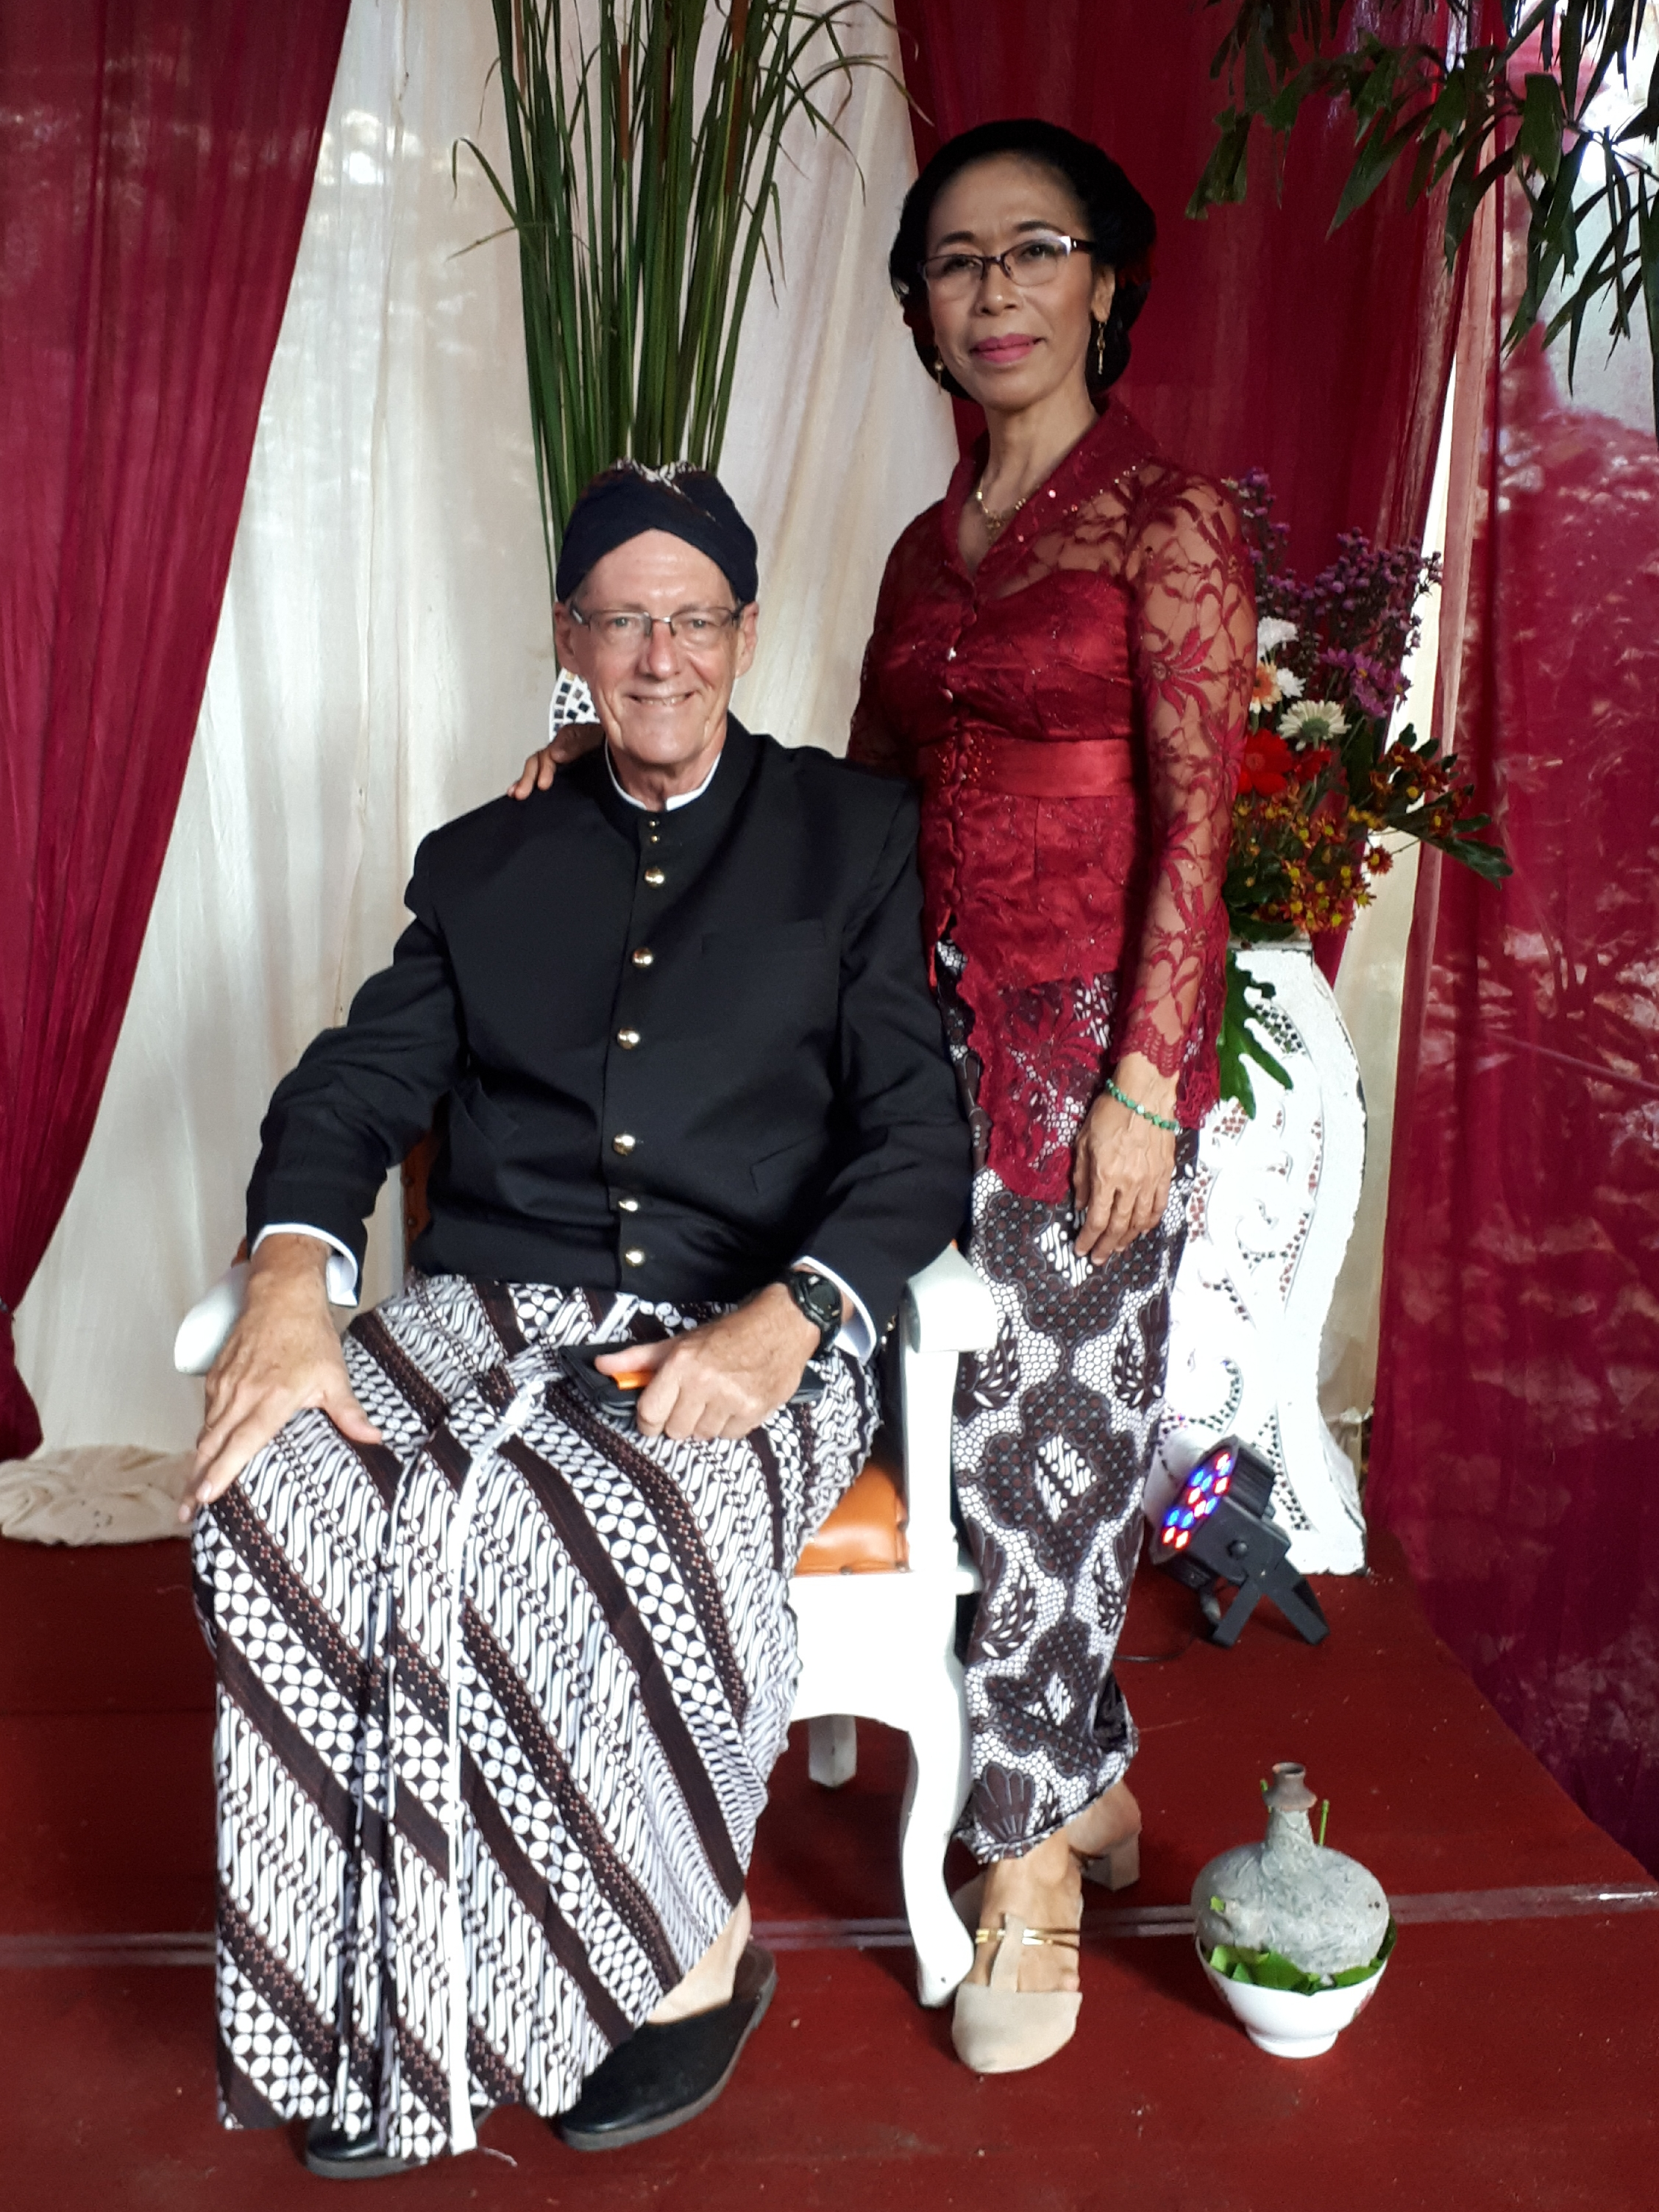 Farsijana and Bernie dressed like a Javanese king and queen.